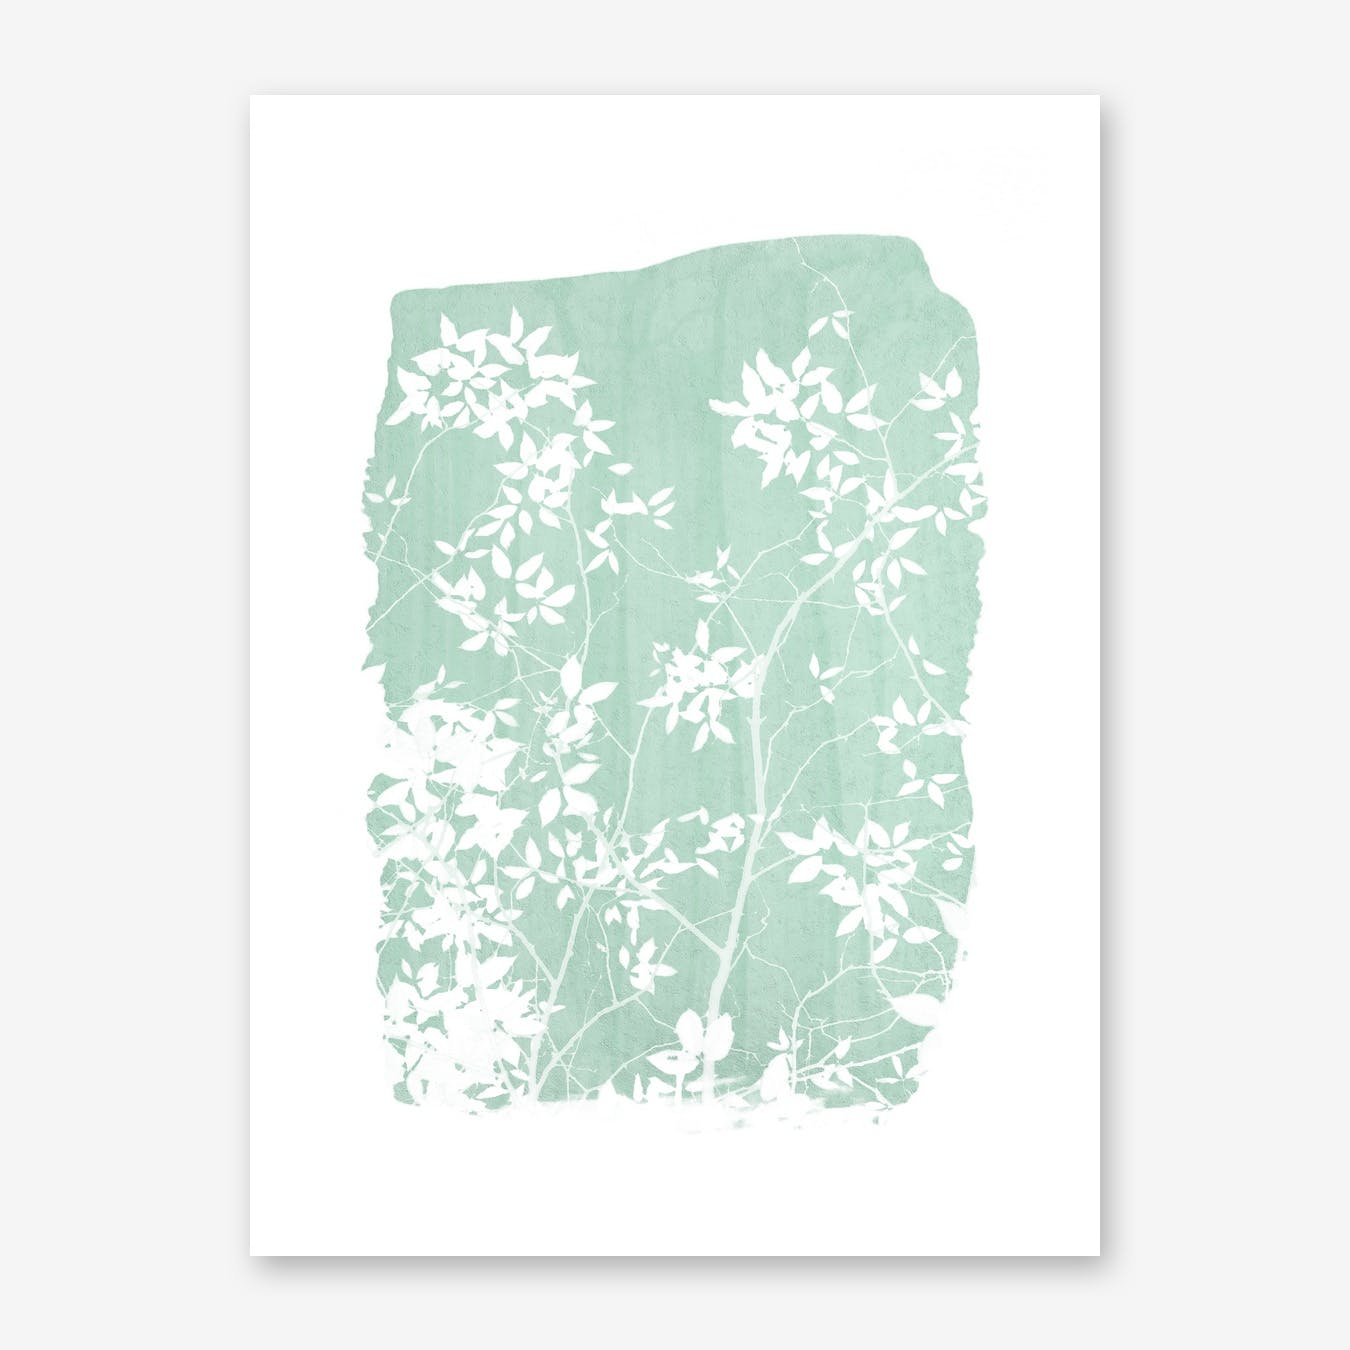 Foliage on Mint Green